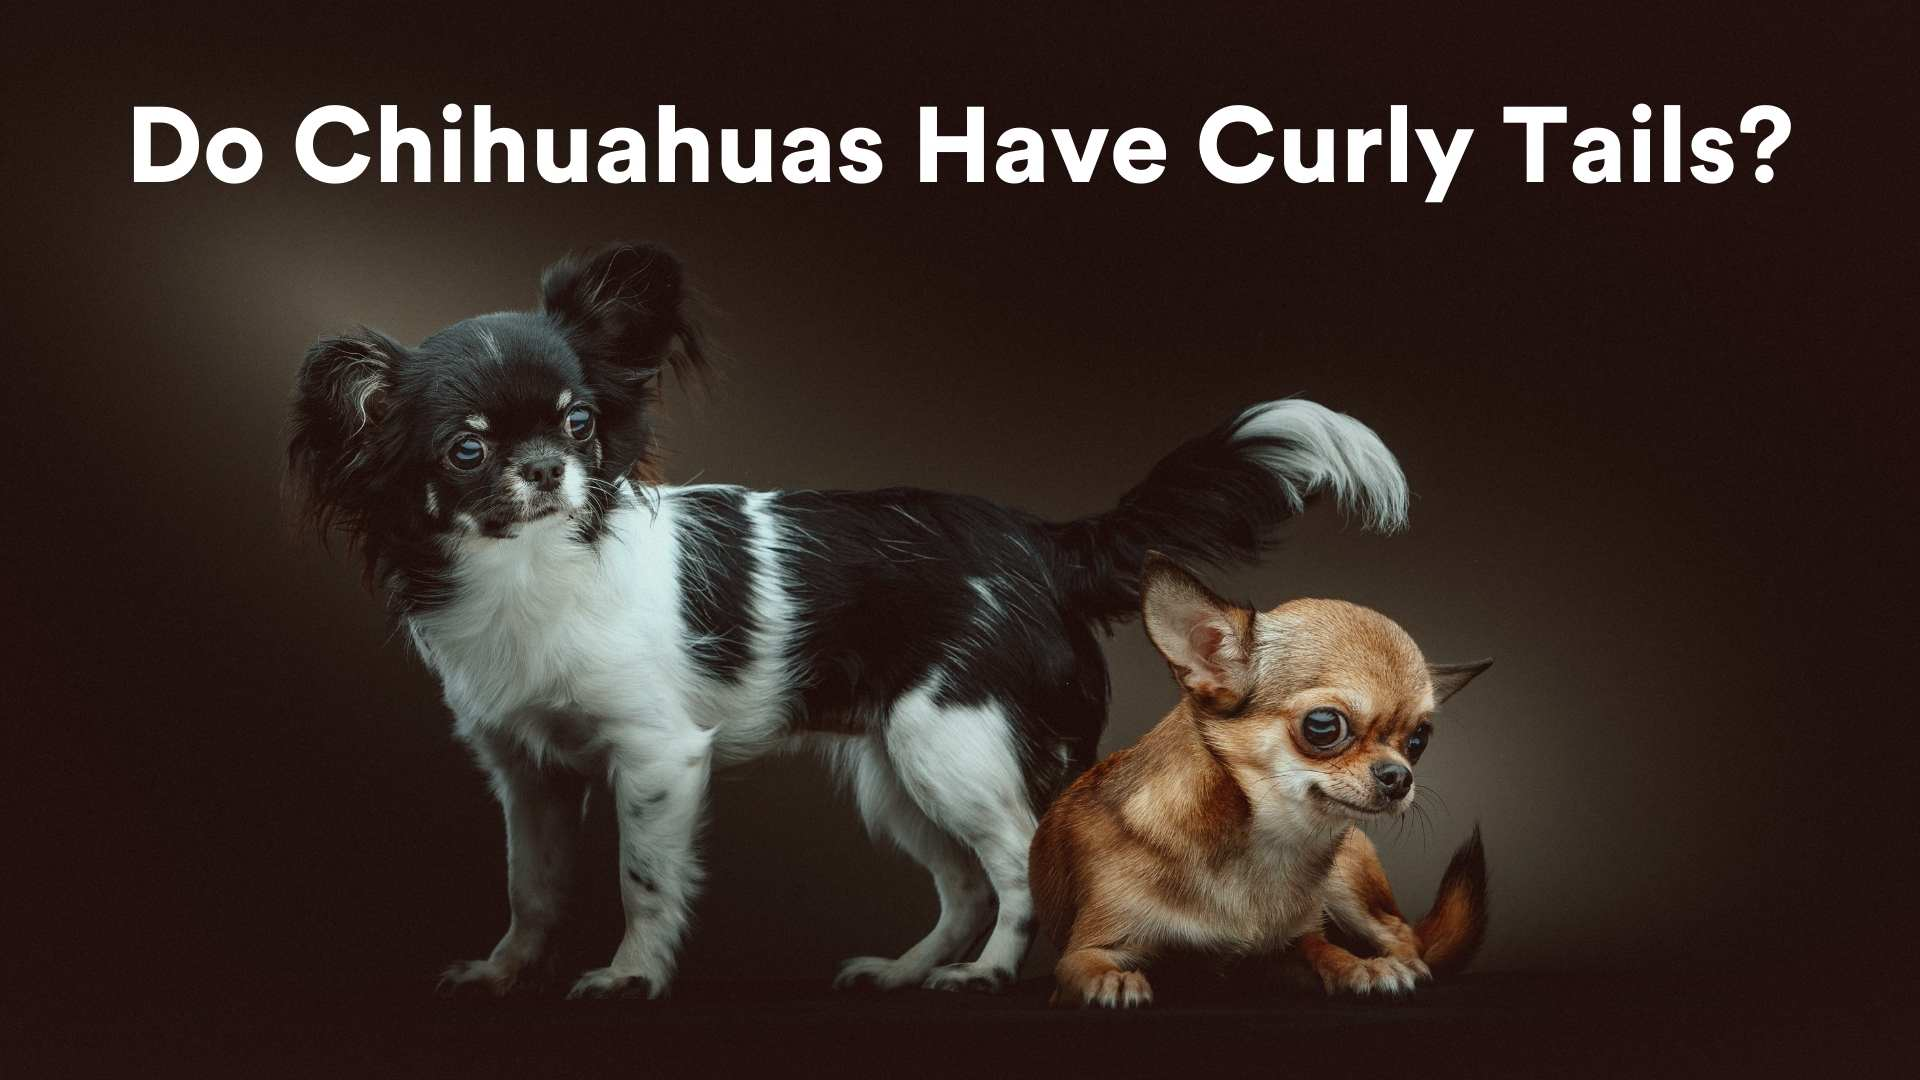 do chihuahuas have curly tails